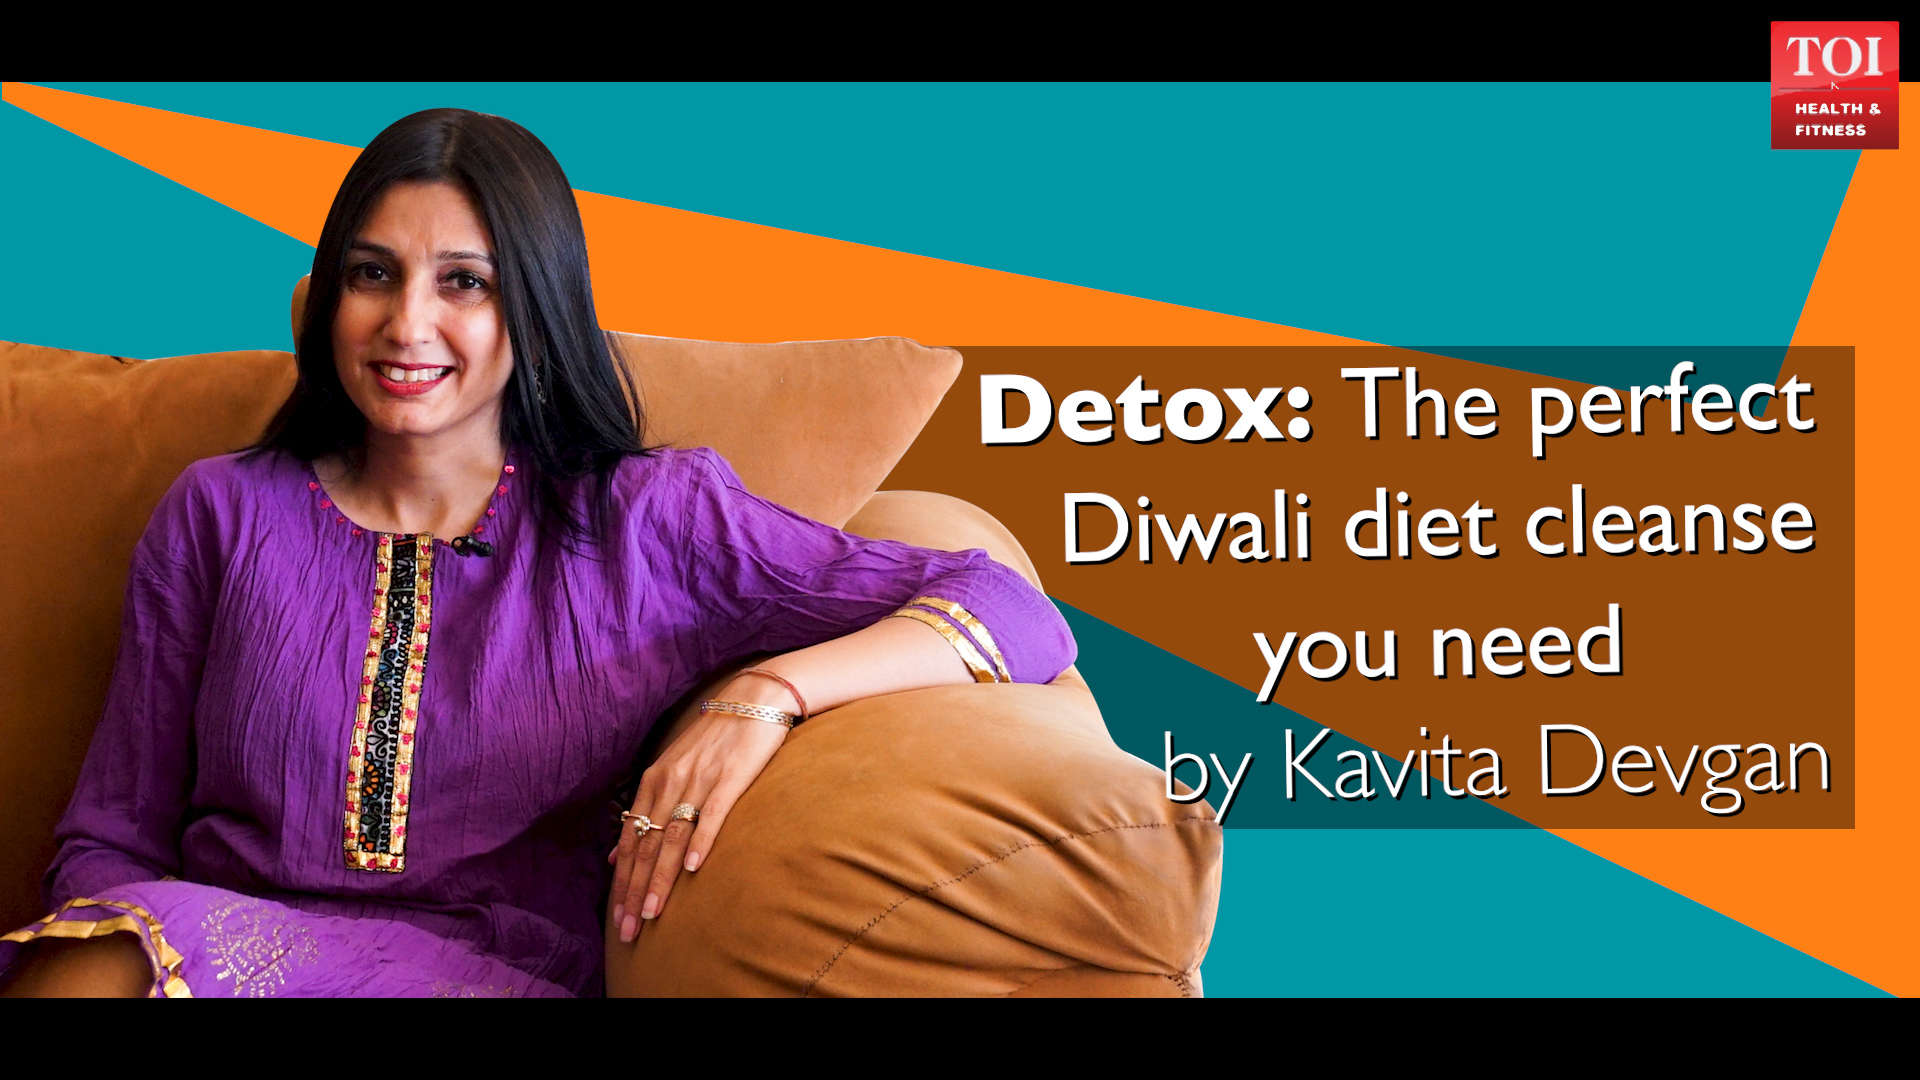 the-perfect-diwali-diet-cleanse-you-need-by-kavita-devgan